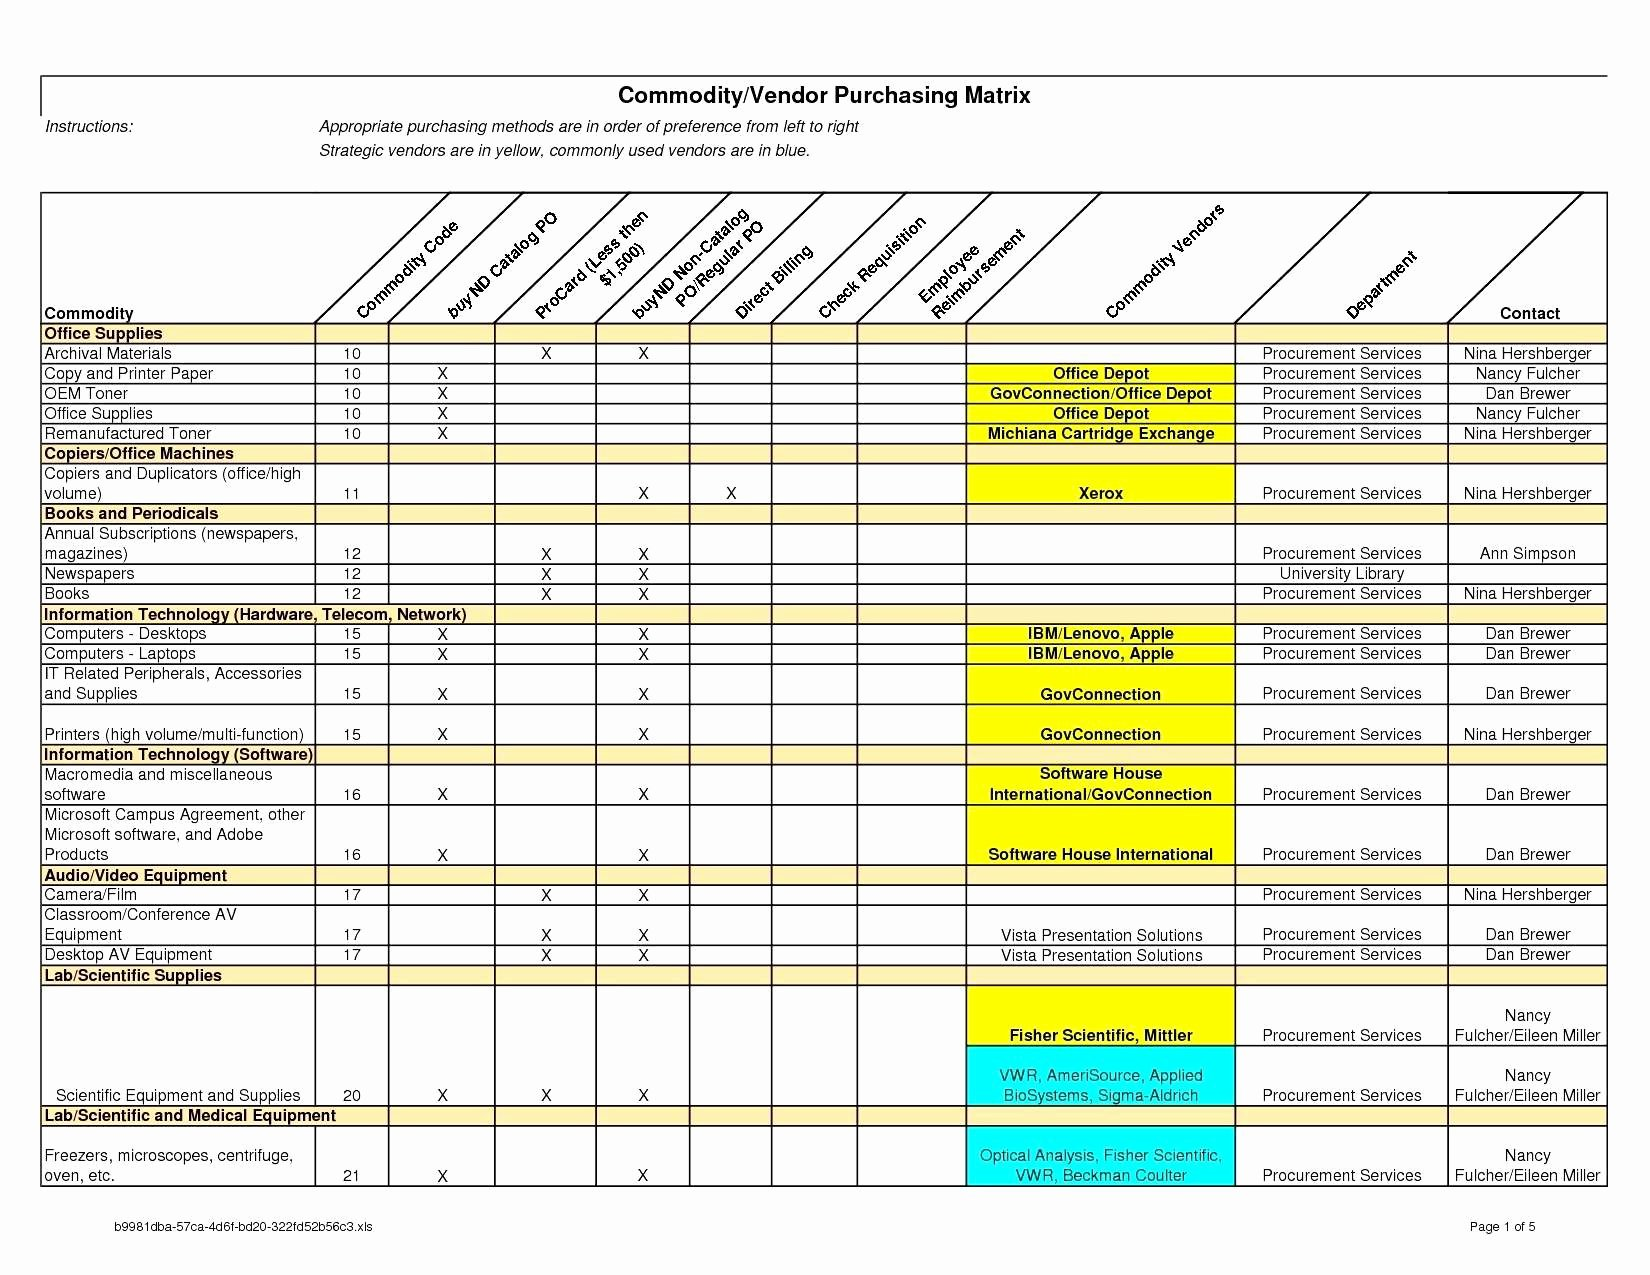 Employee Training Matrix Template Excel New Tracking Employee Training Spreadsheet Excel to Track